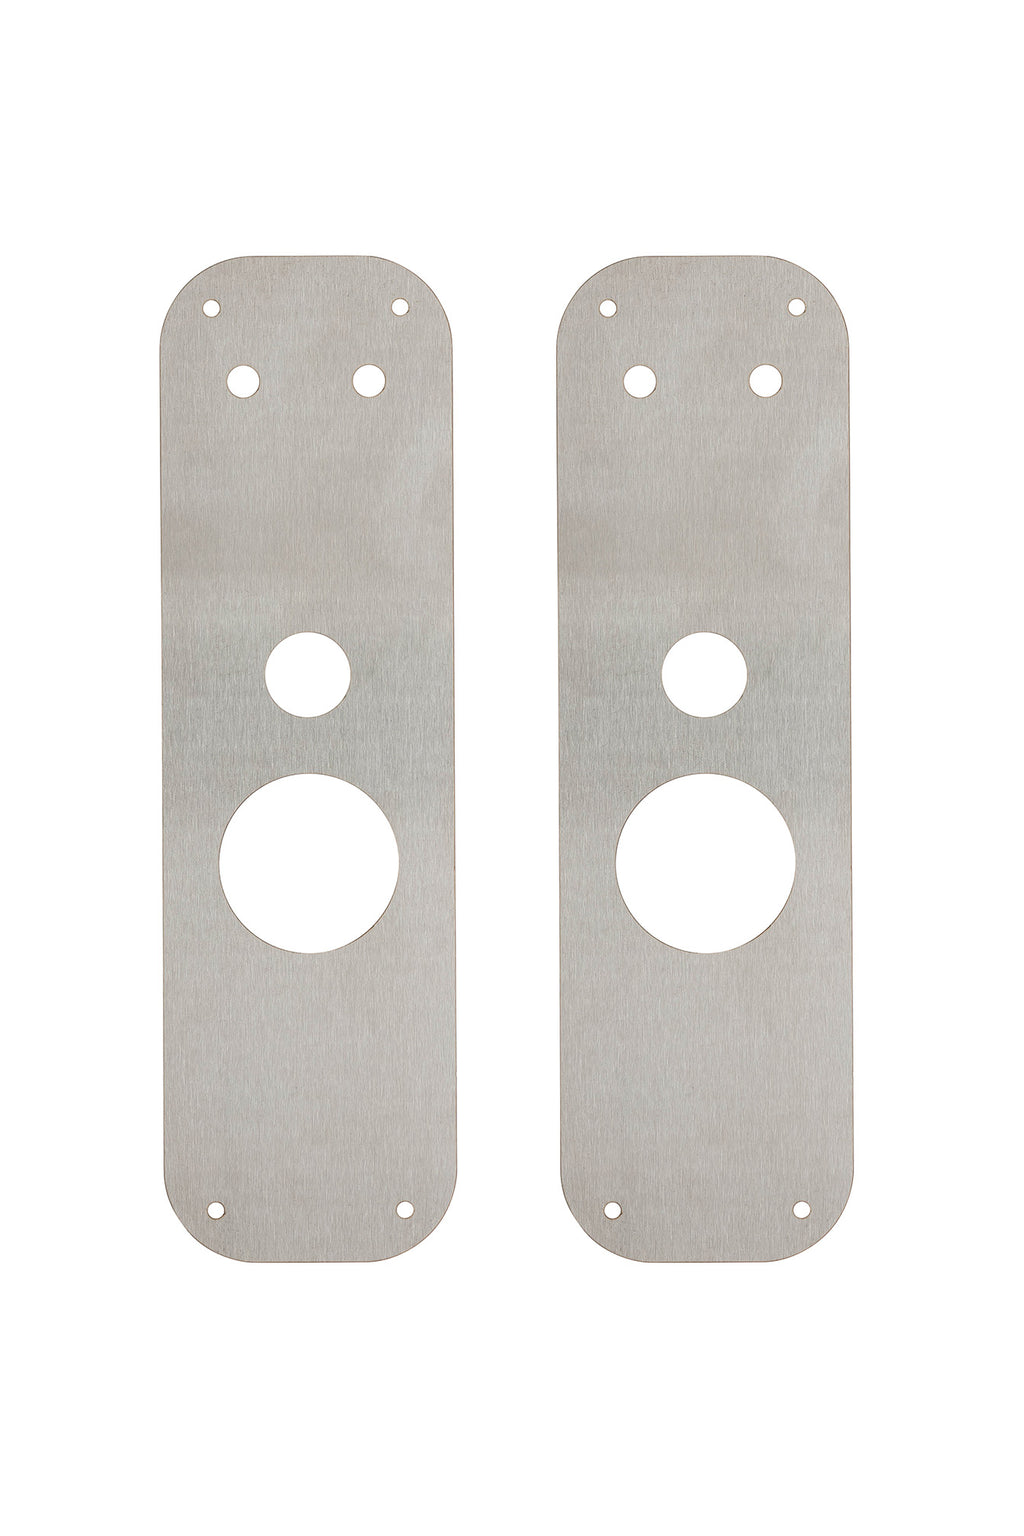 RemoteLock OpenEdge CG Coverplates